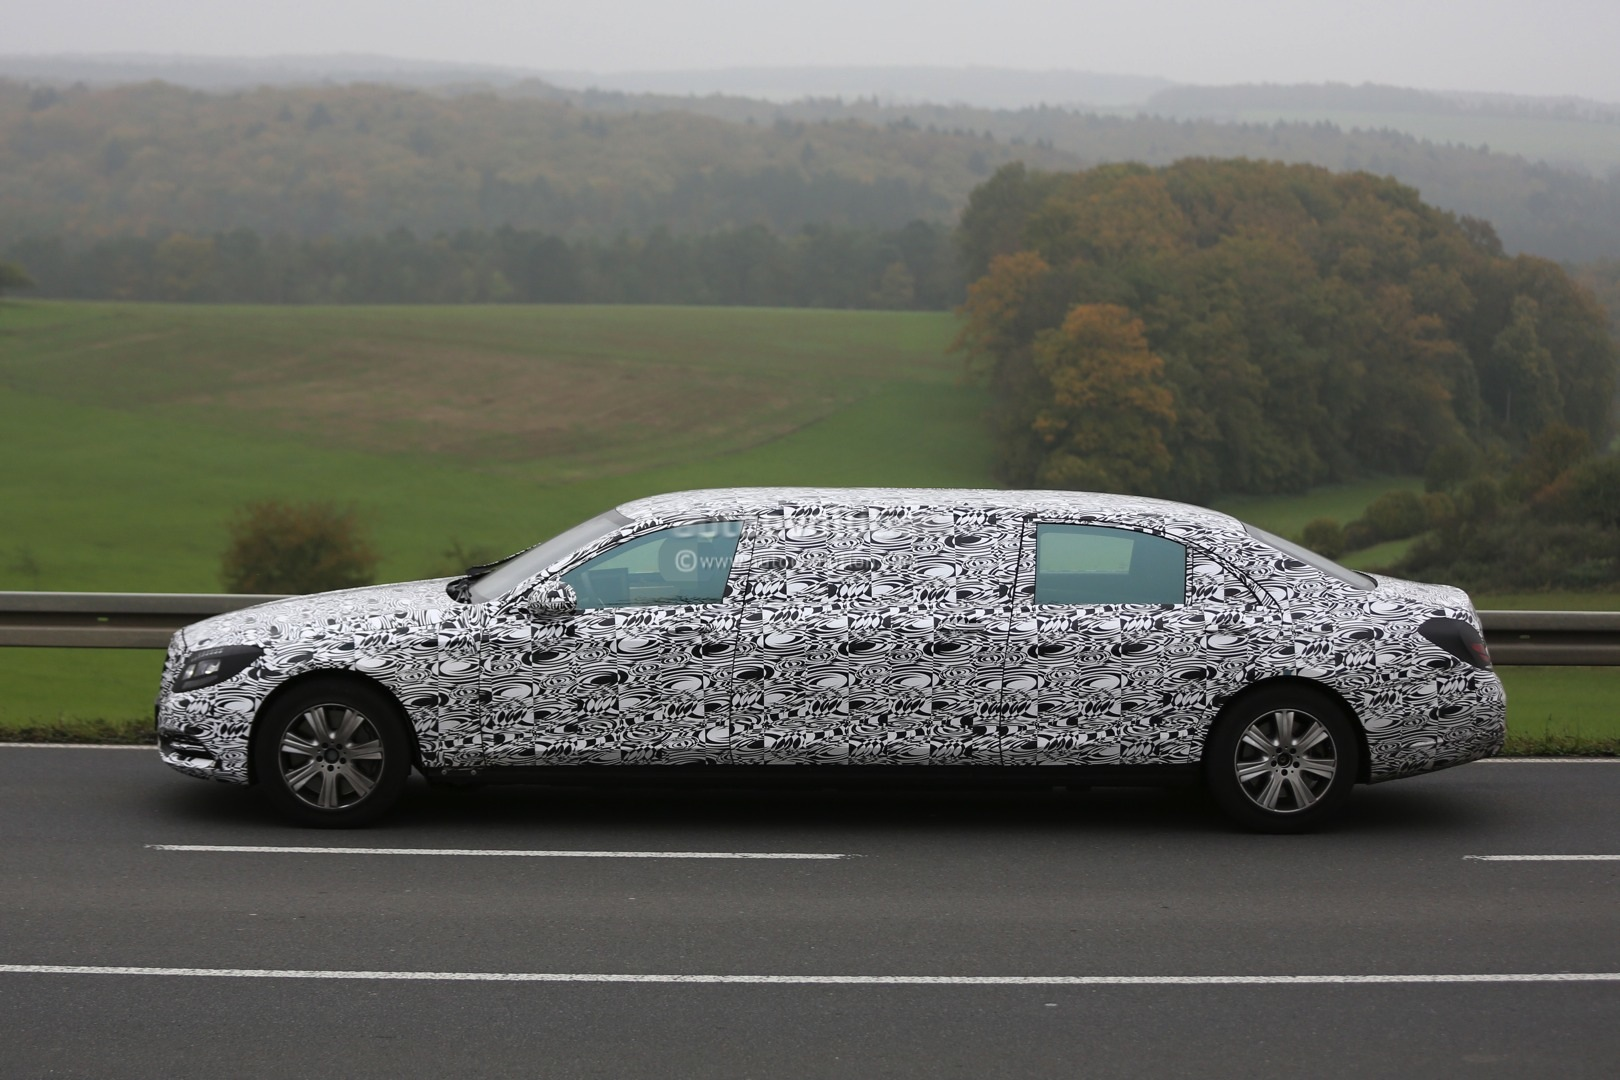 Ford Focus Rims >> 2016 Mercedes-Benz S 600 Pullman Spied Getting Closer to Production - autoevolution